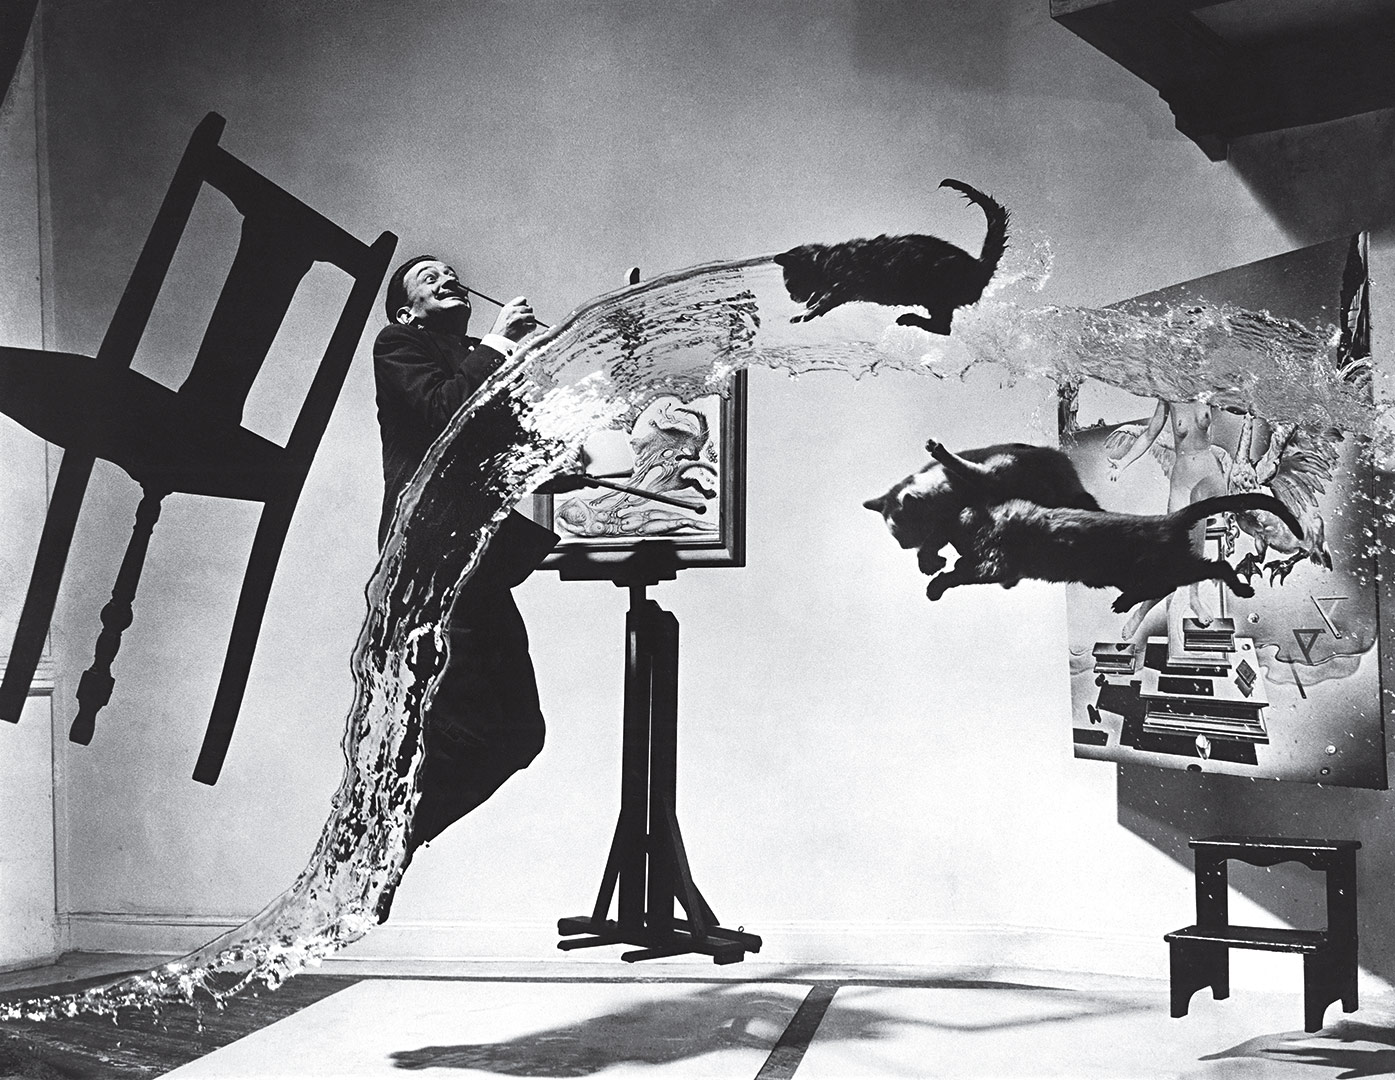 Dalí Atomicus | 100 Photographs | The Most Influential Images of All Time